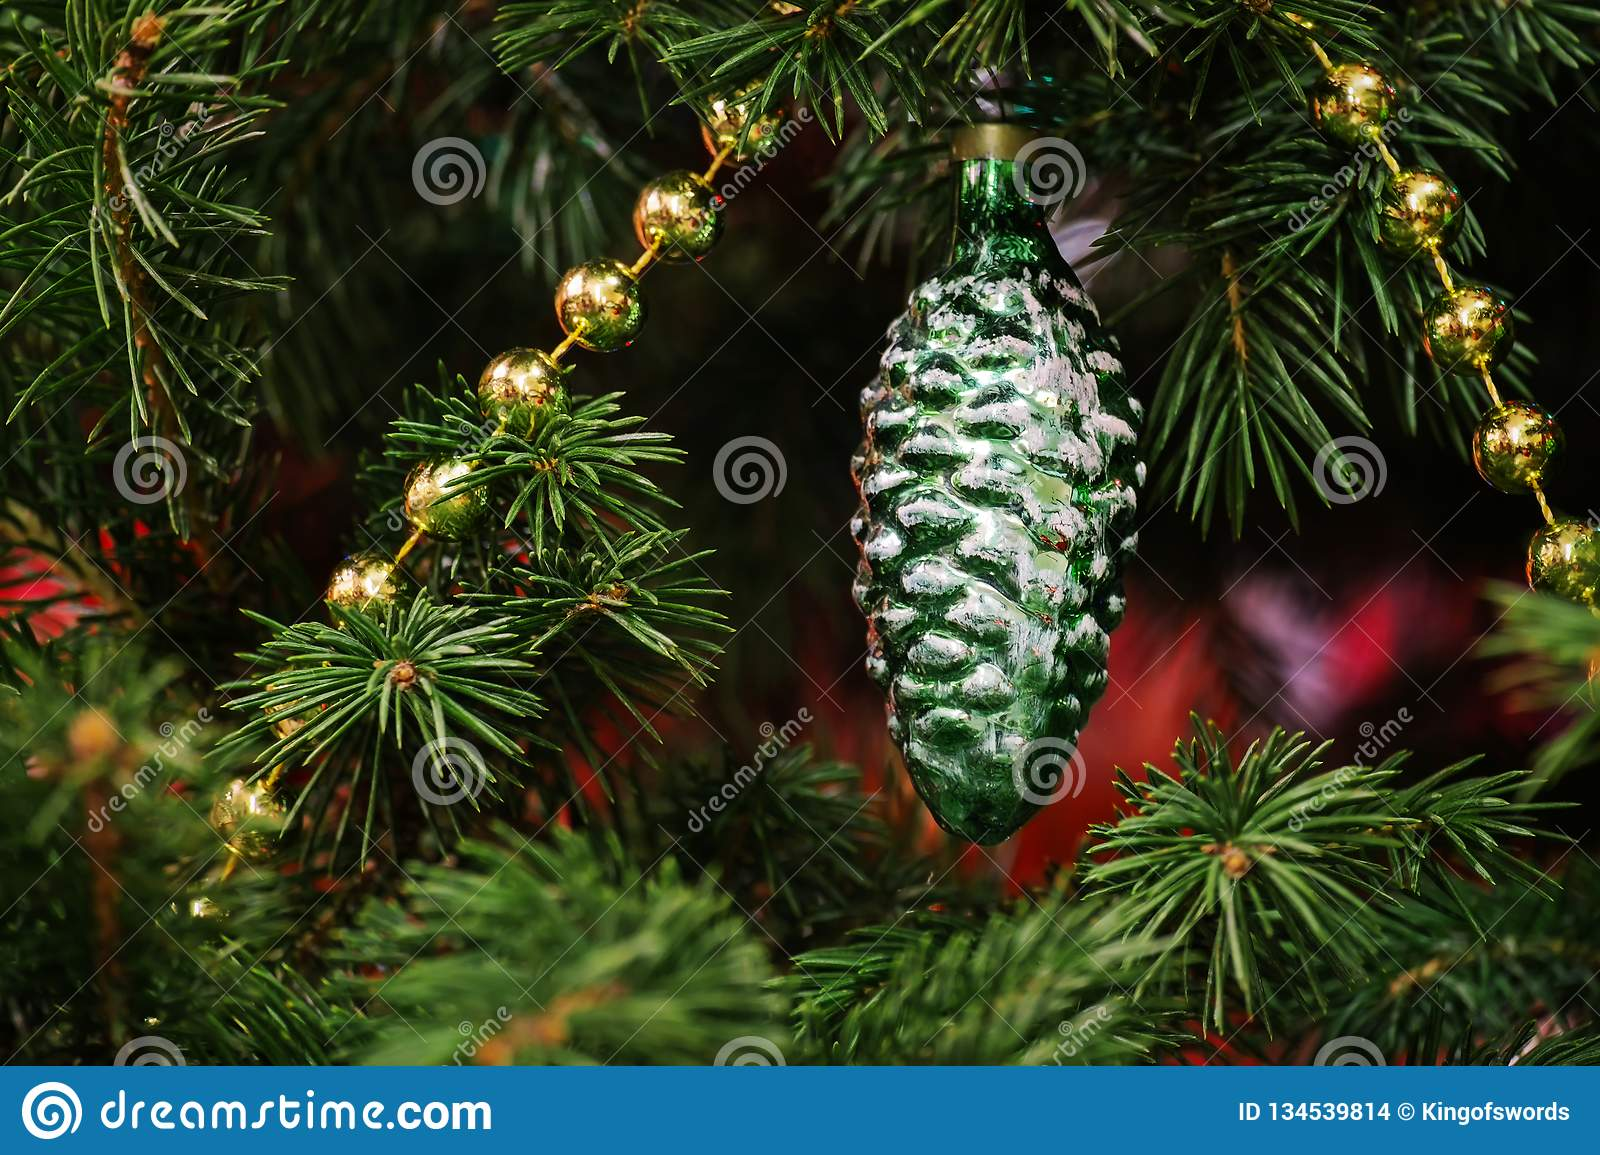 Antique Christmas Tree Decoration Since The Ussr Fir Cone Christmas Tree Toy In The Green Branches Of Spruce Stock Photo Image Of Ball Style 134539814